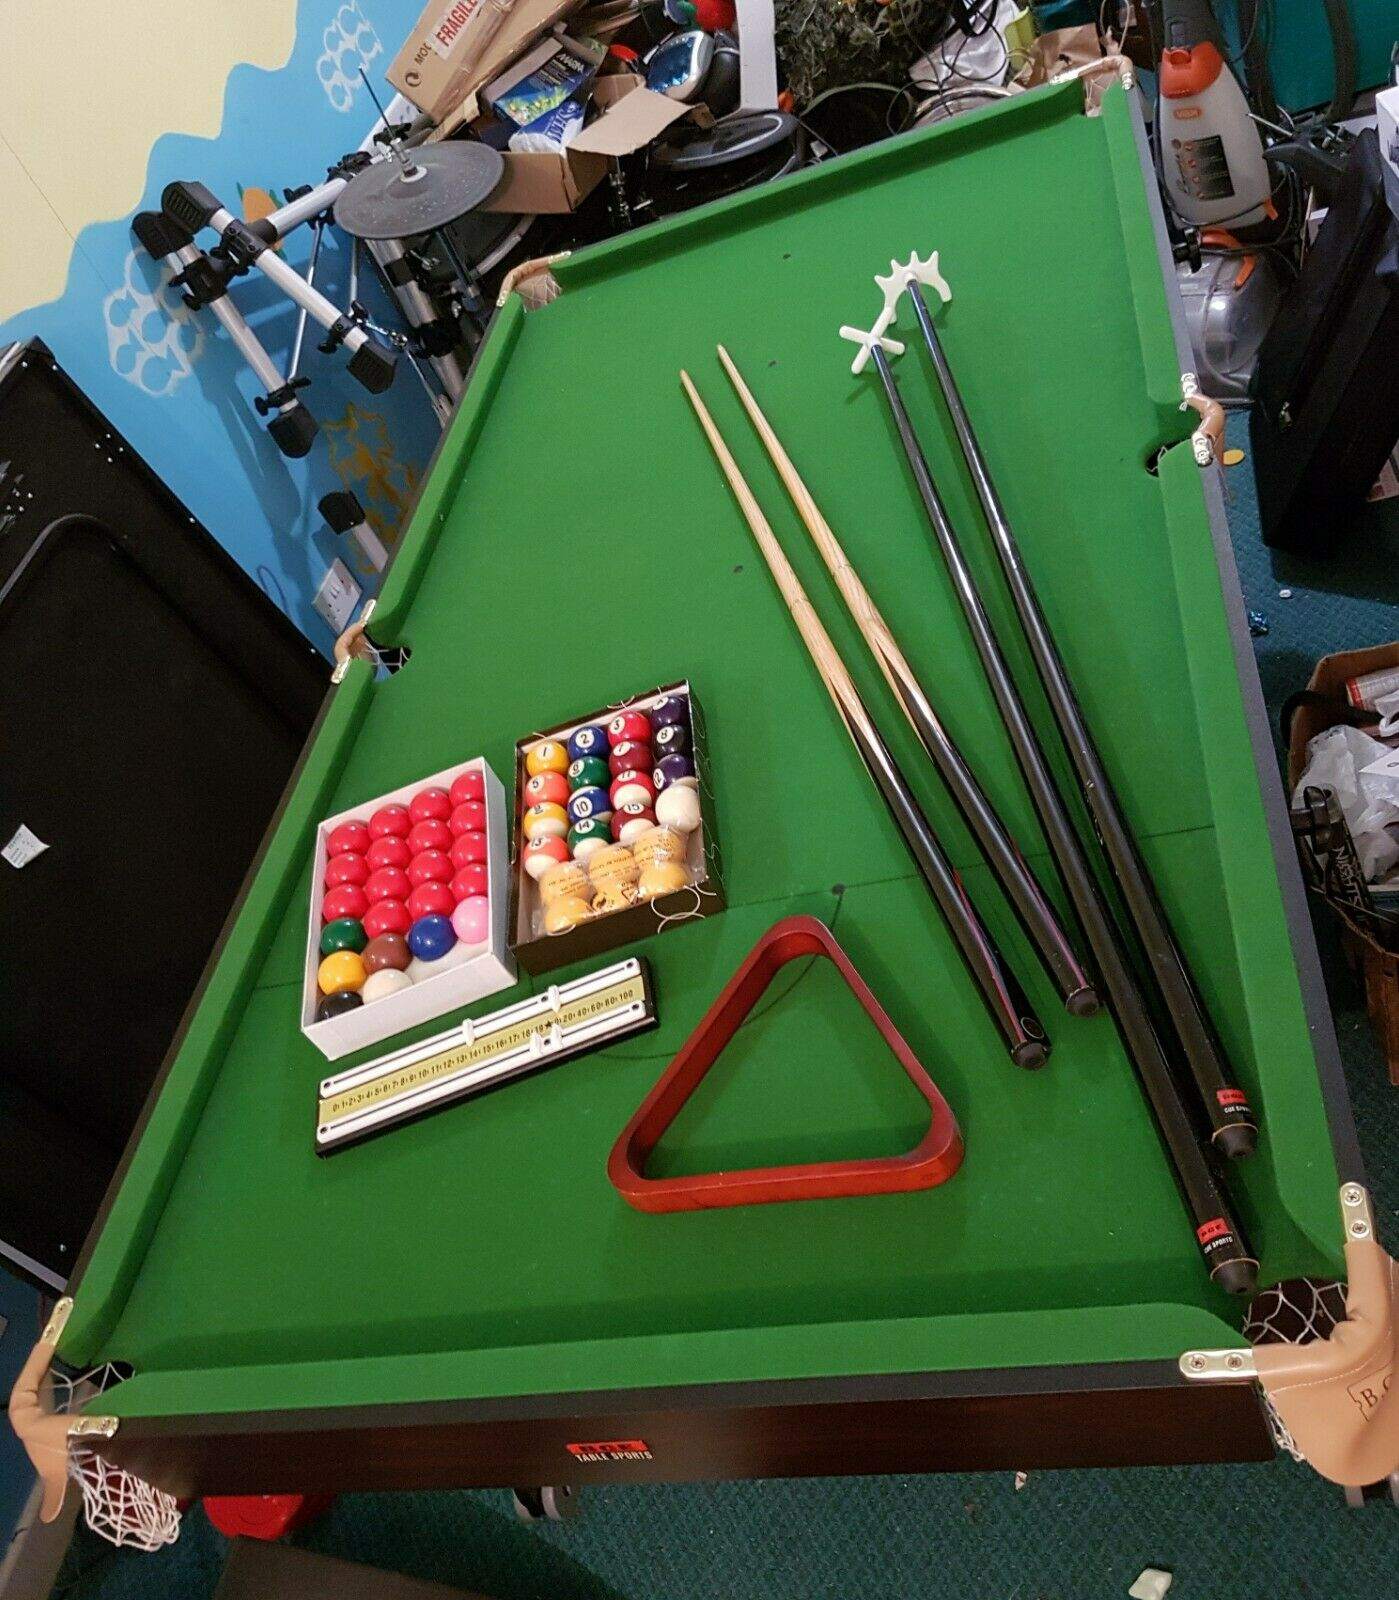 BCE 6 ft Snooker / Pool table, snooker + pool balls + cues, rests Stores upright